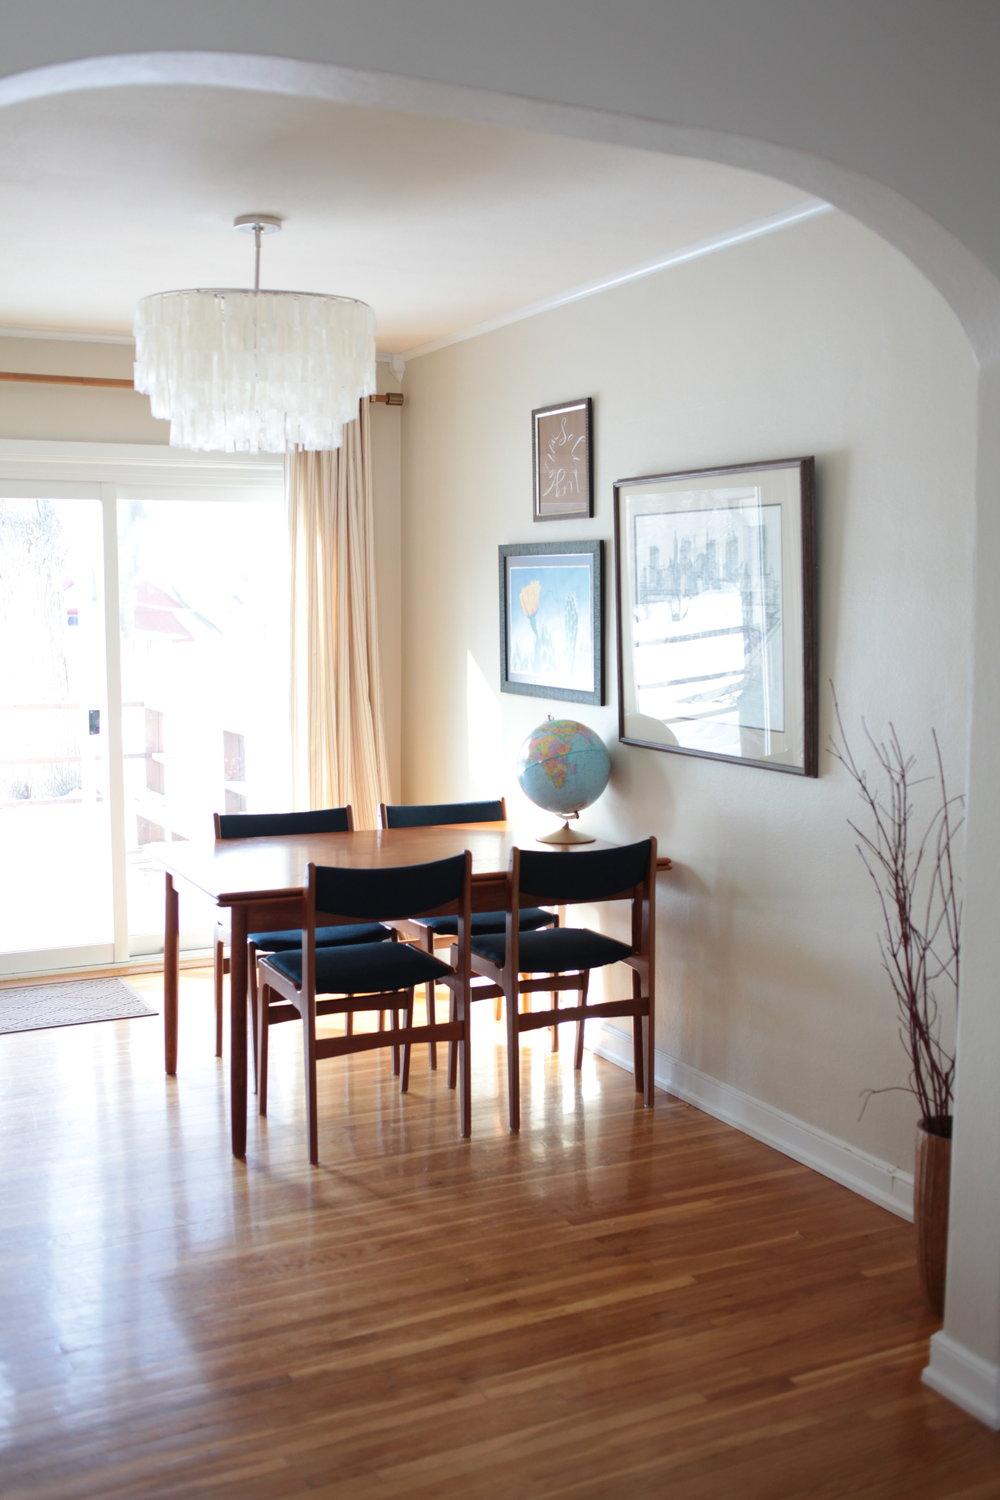 Mid Century Modern dining room with West Elm capriz chandelier, gallery wall, and blue dining chairs